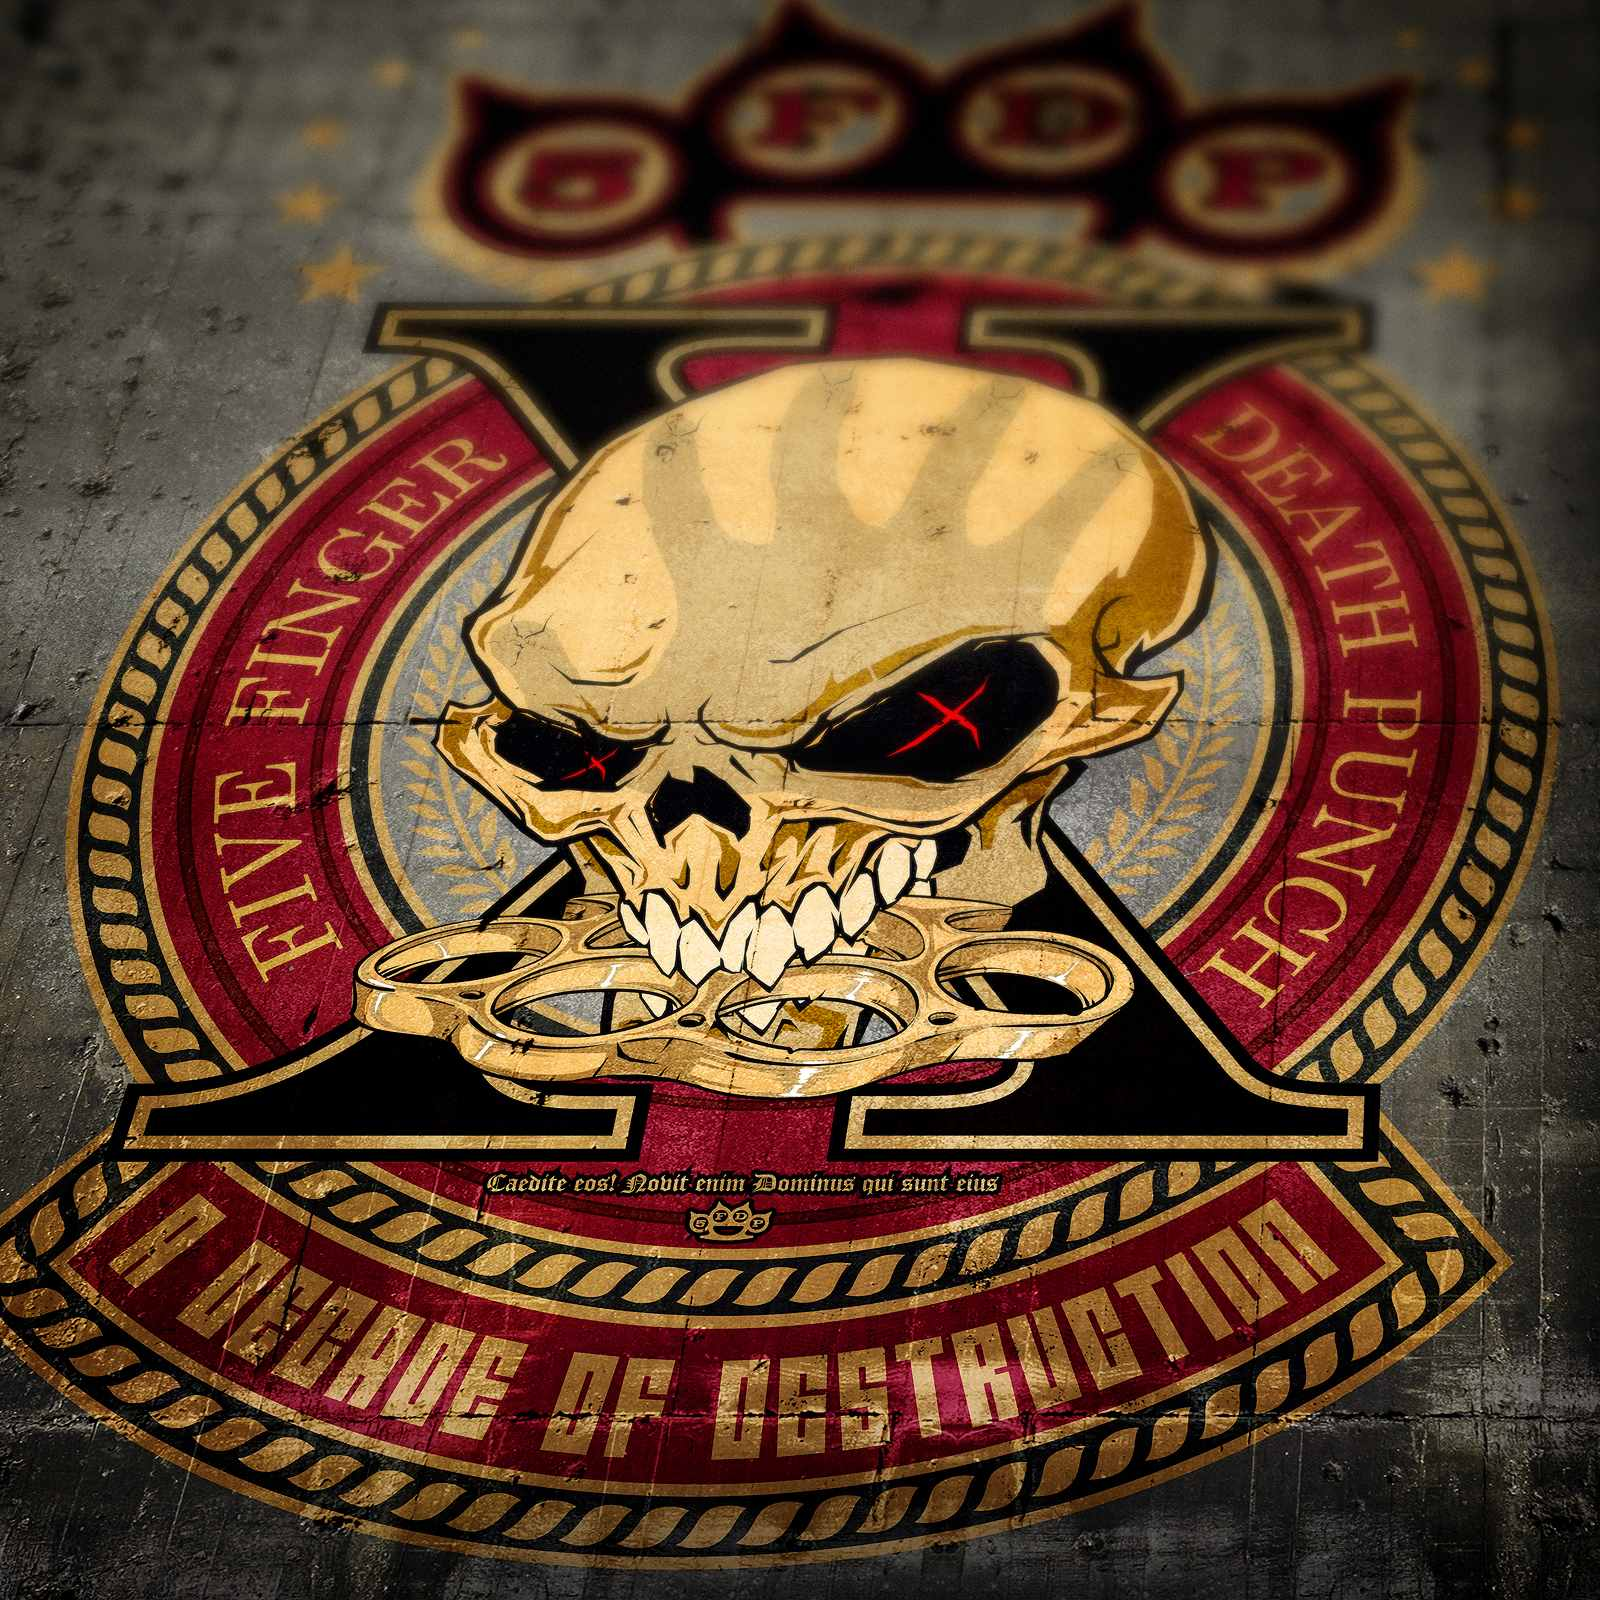 Five Finger Death Punch- A Decade Of Destruction